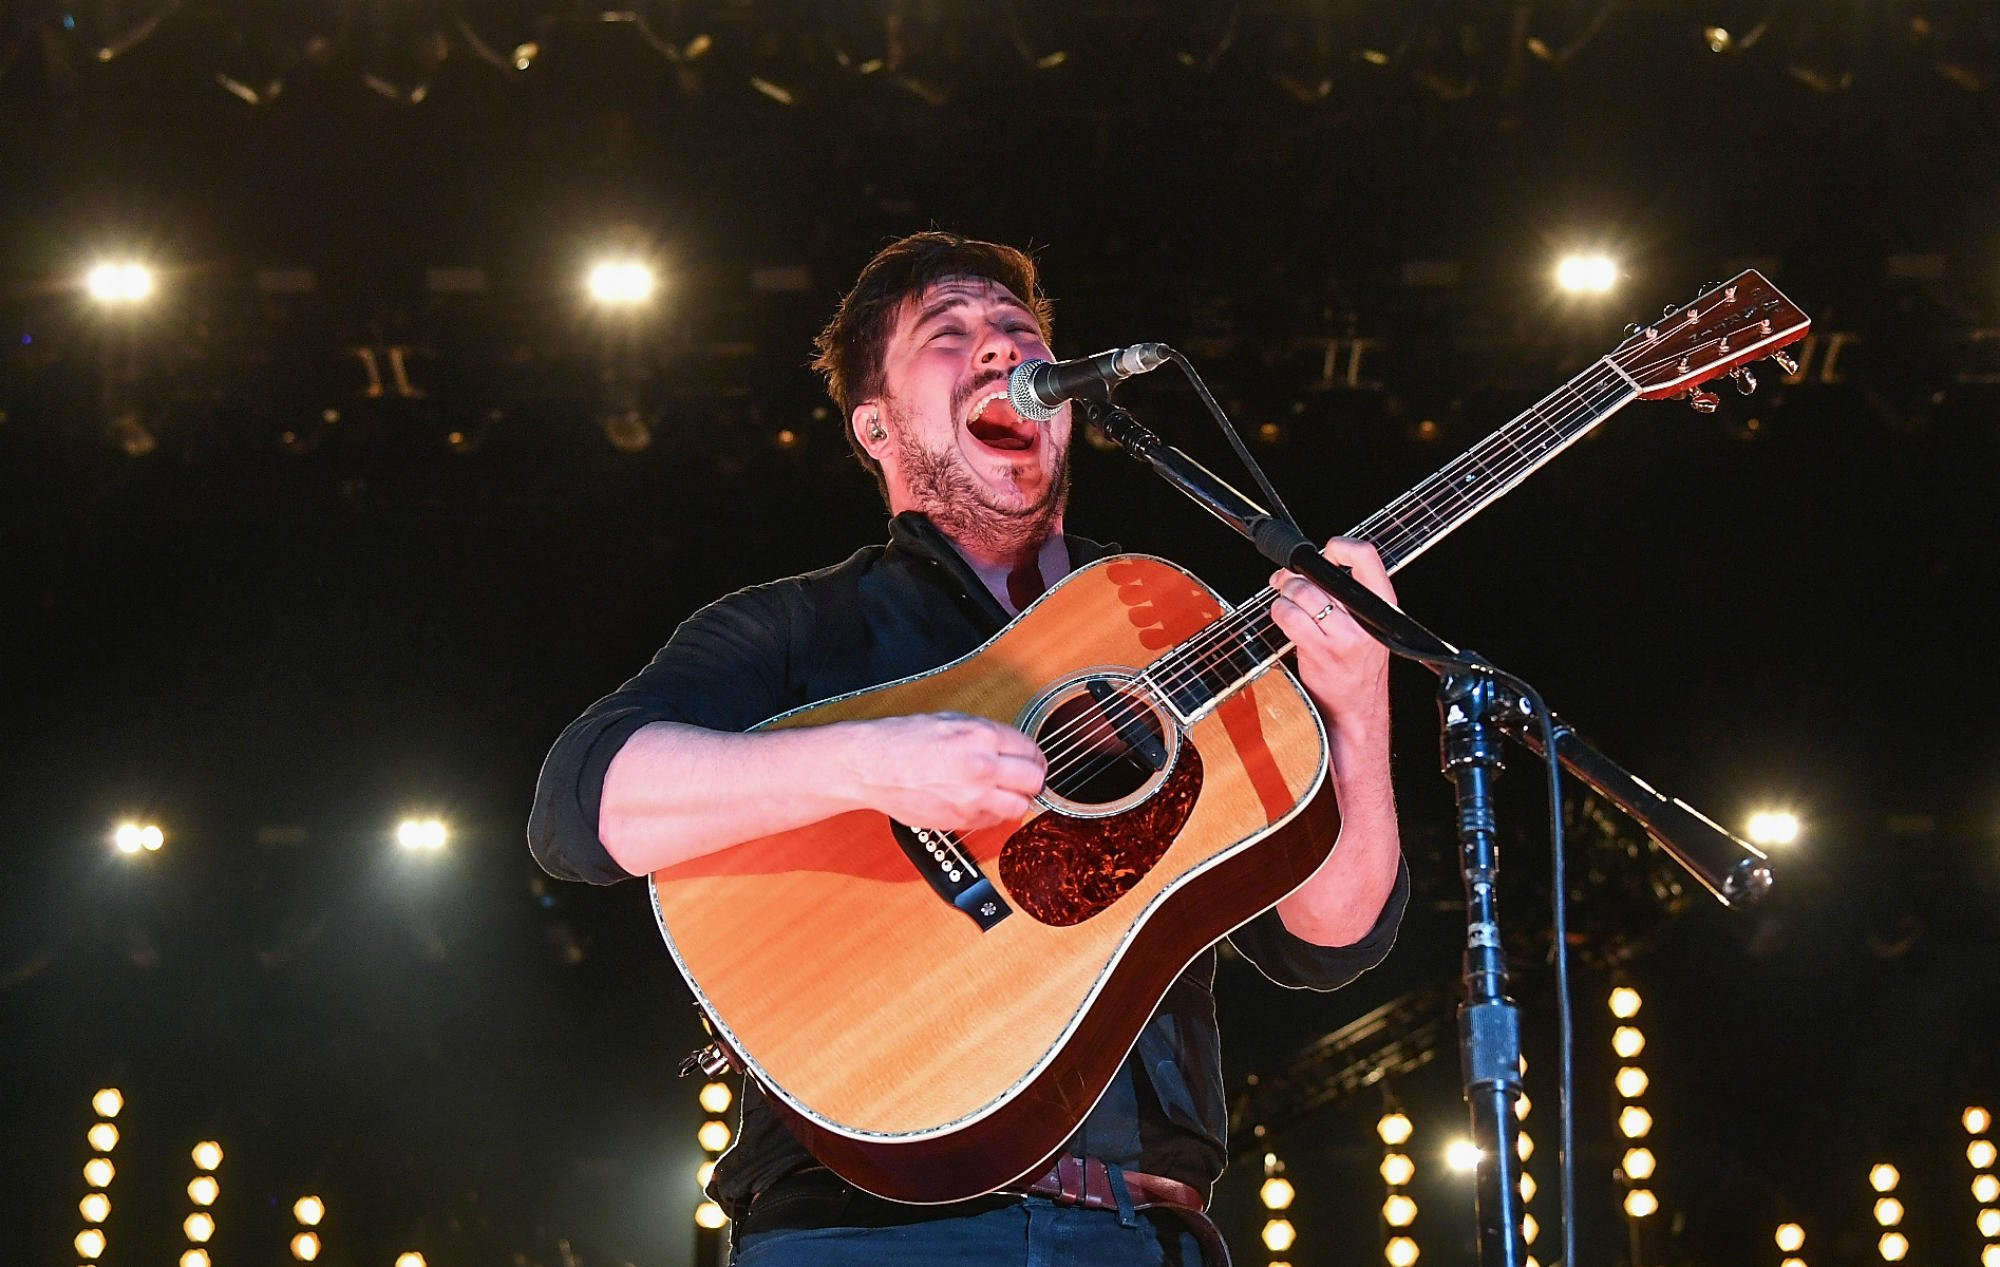 Mumford & Sons forced to postpone tour dates over 'groundbreaking' stage https://t.co/j3Nv7sp8Ce https://t.co/gI6xlzqEaS